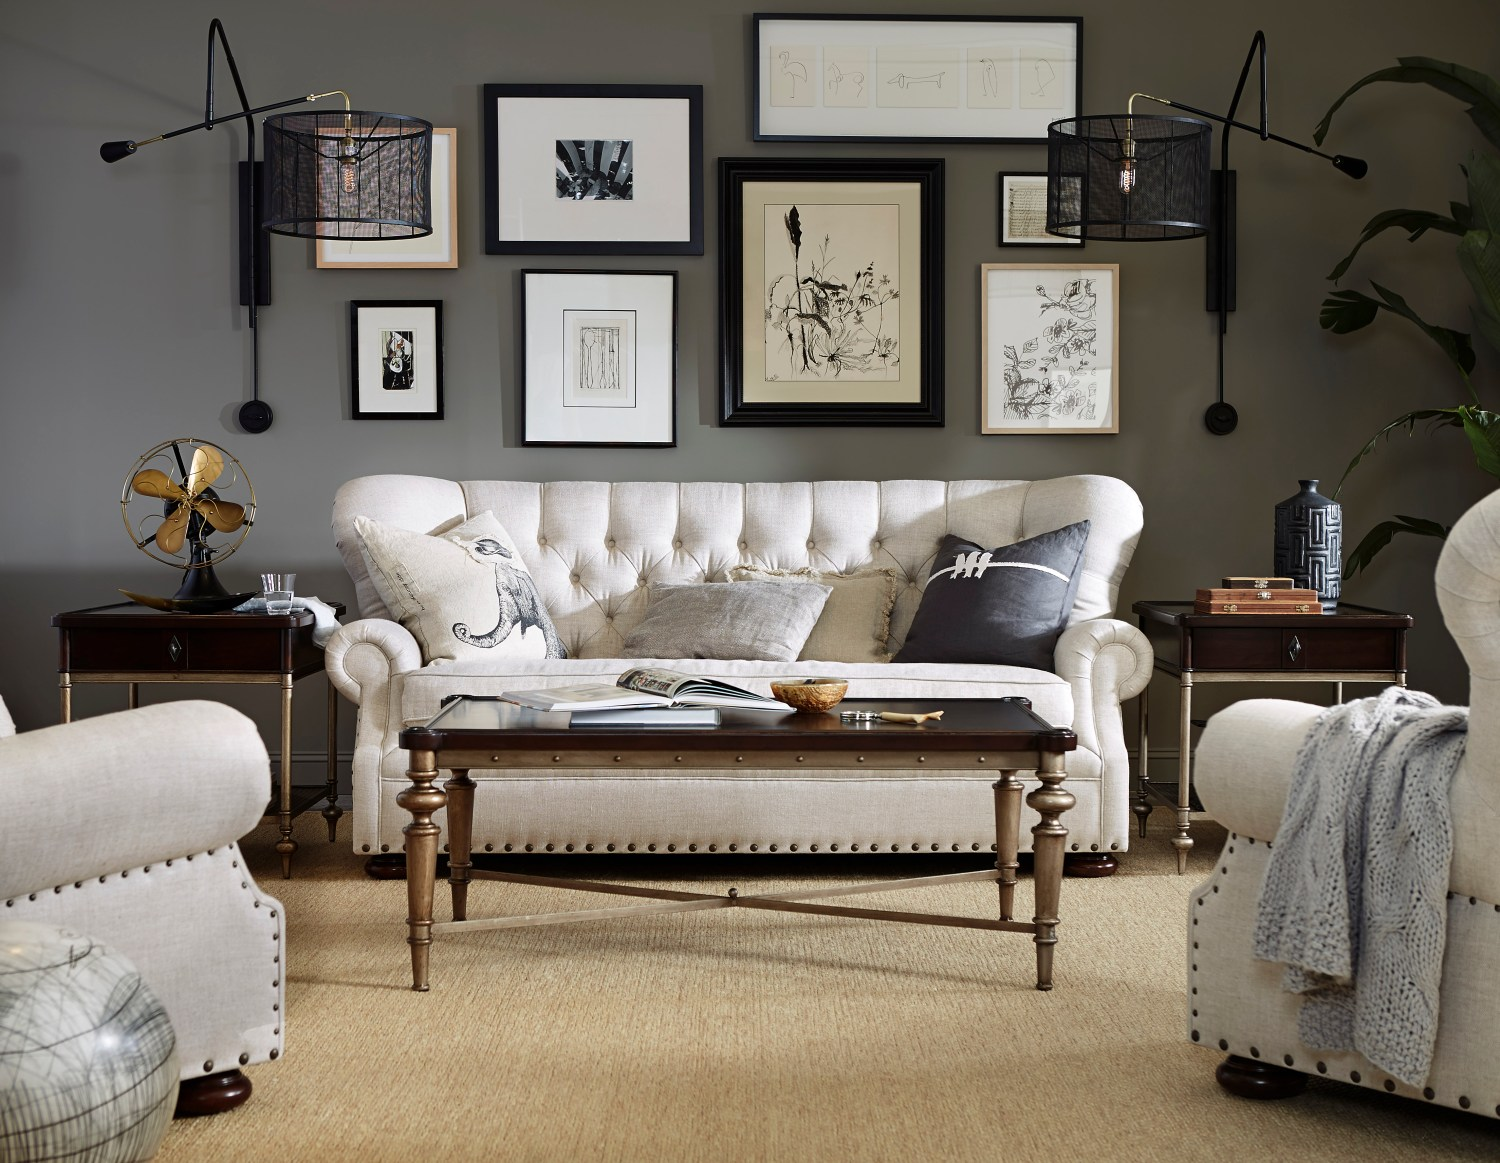 Best Home Decor Shops In Irvine Cbs Los Angeles